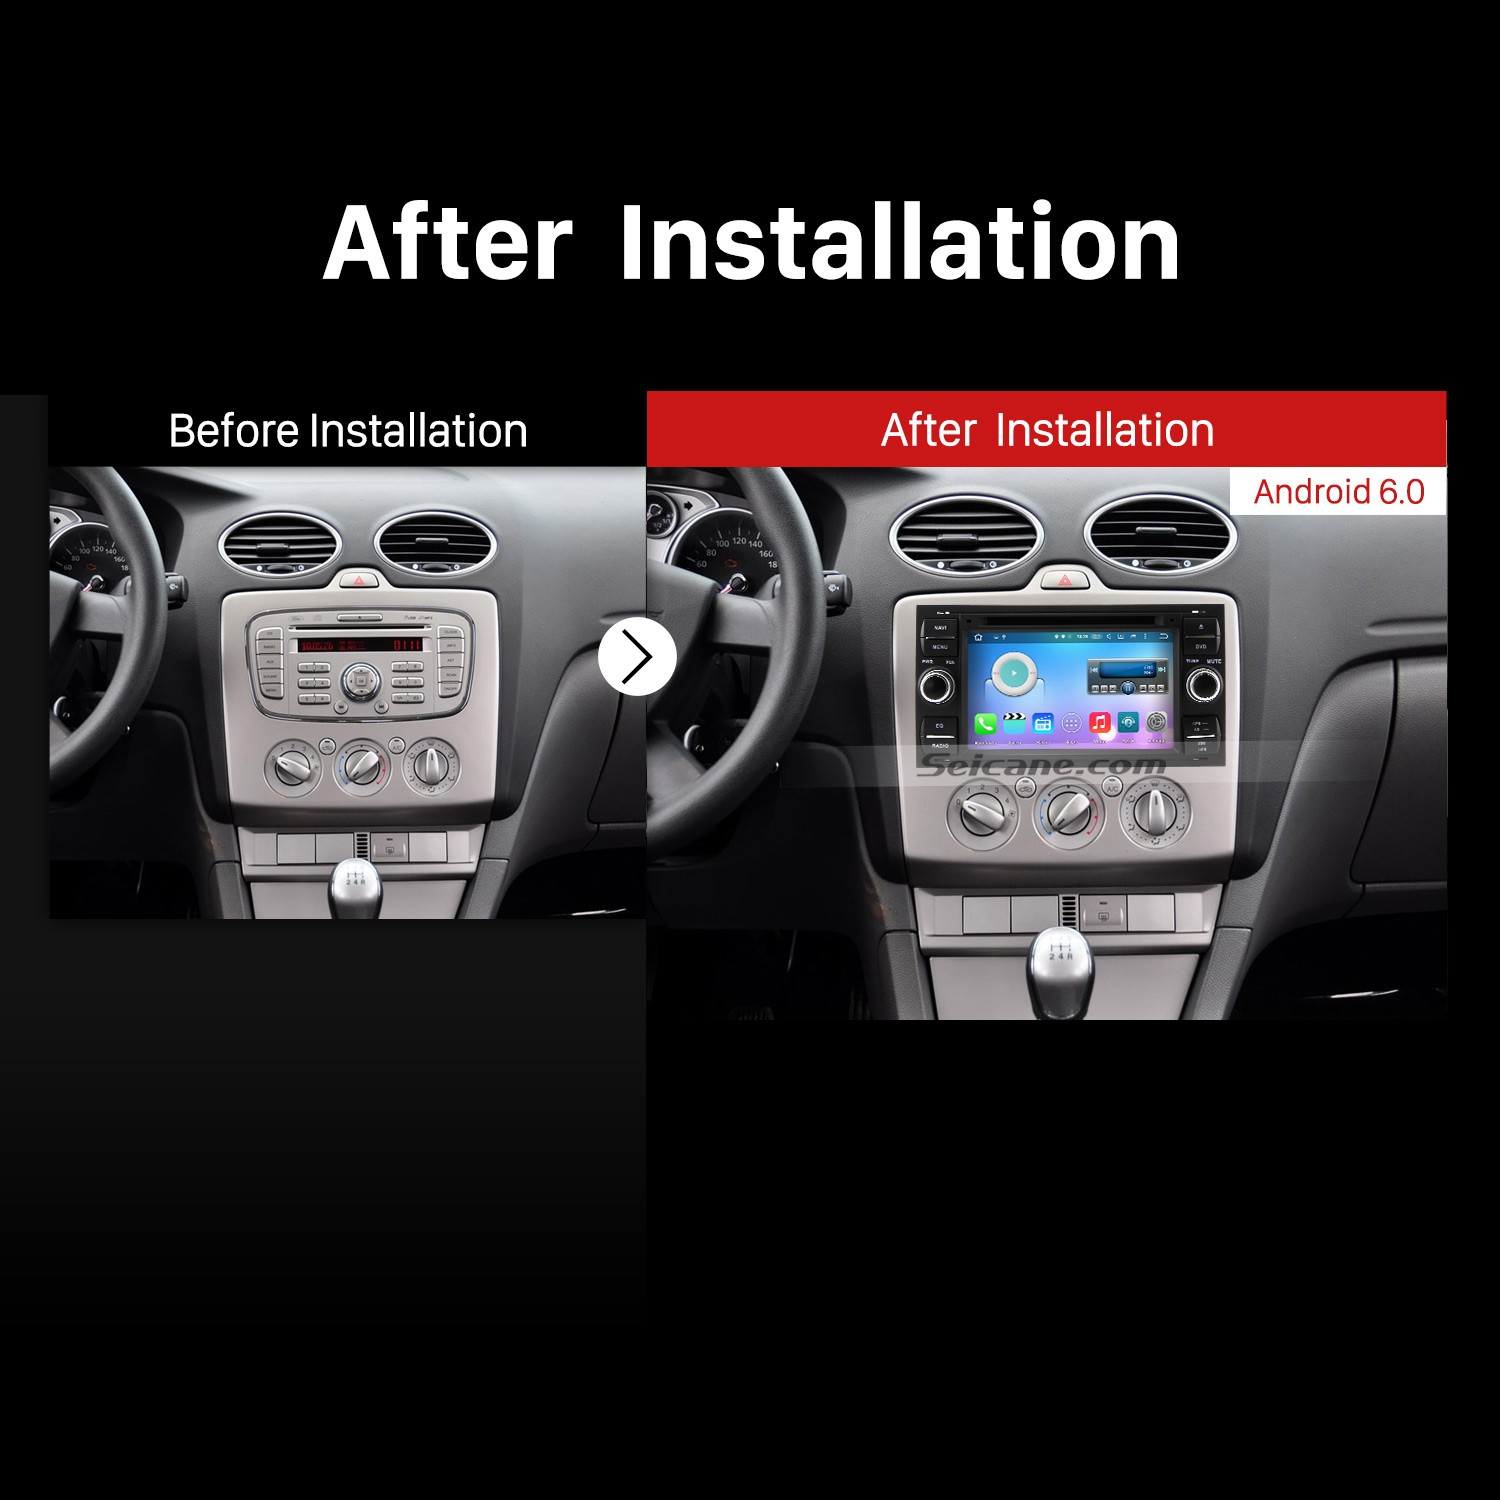 Removal And Installation Of A 2006 2011 Ford Fusion Gps Bluetooth Dvd Car Radio Seicane